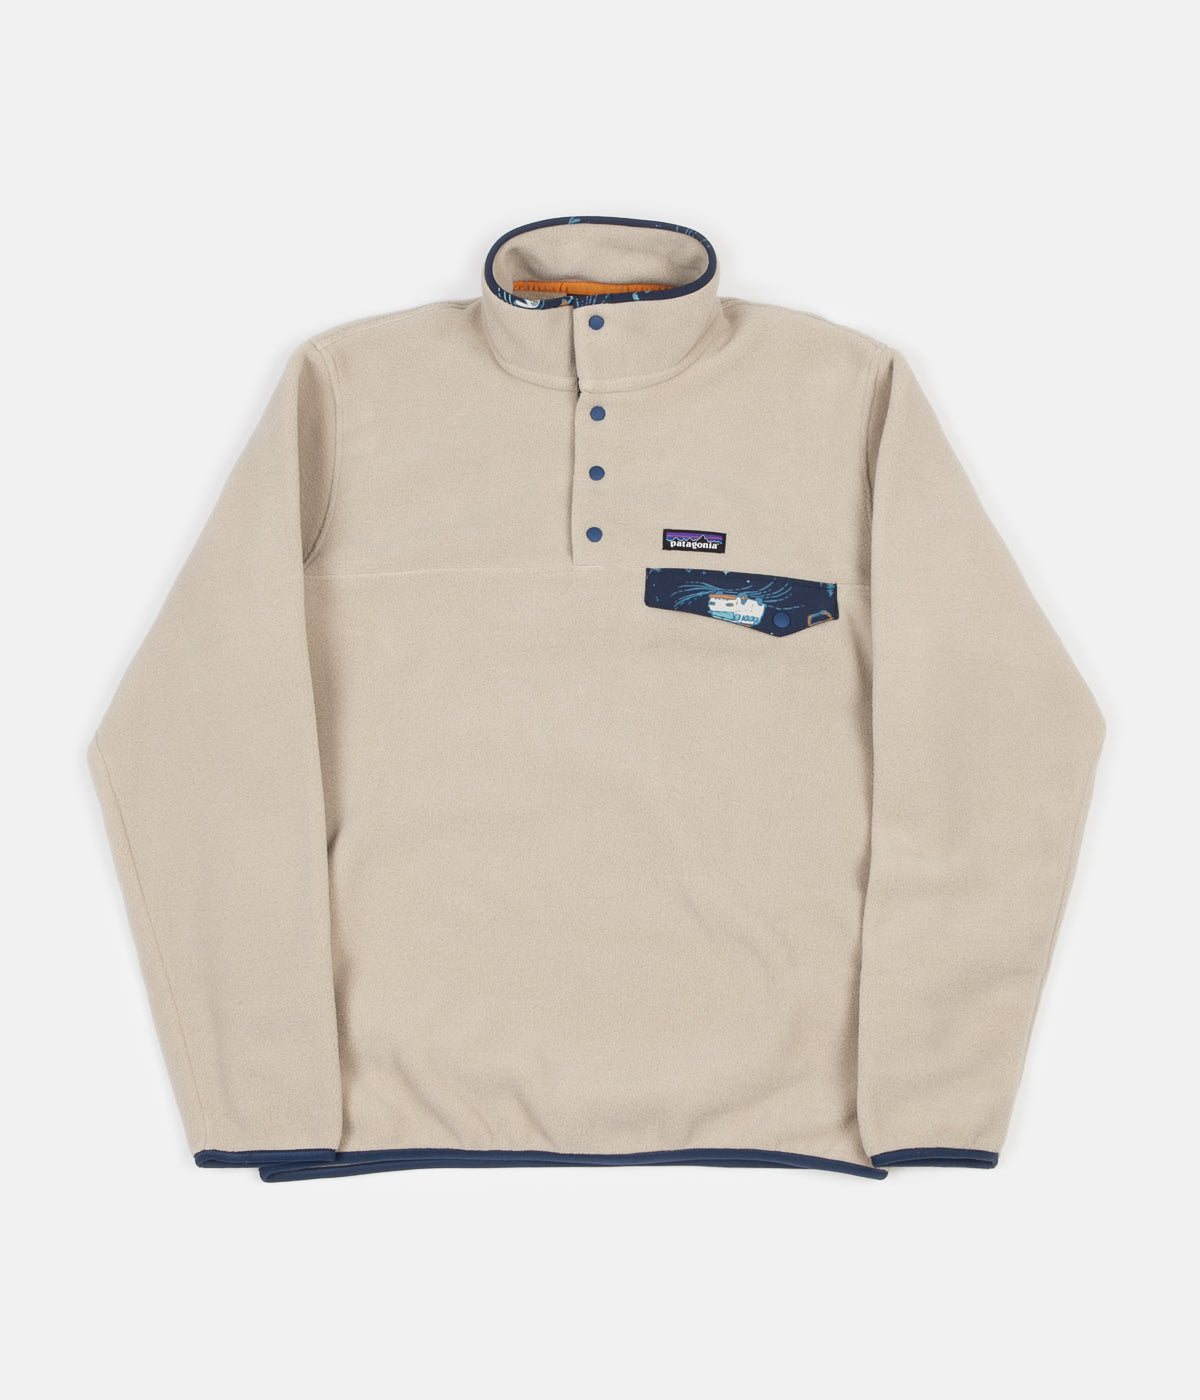 Patagonia Lightweight Synchilla Snap-T Pullover Jacket - El Cap Khaki